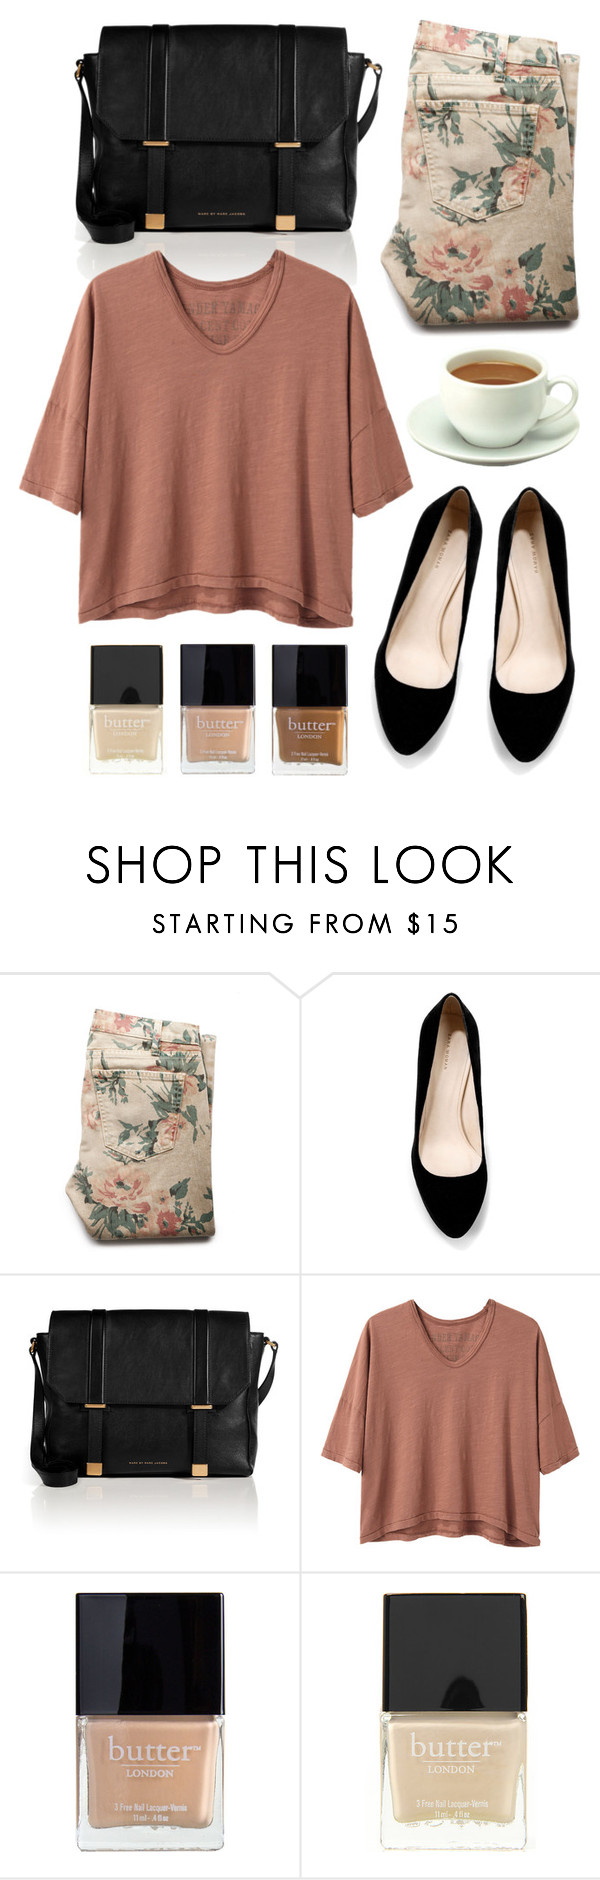 Untitled by hanaglatison on Polyvore featuring Alexander Yamaguchi, Current/Elliott, Zara, Marc by Marc Jacobs and Butter London